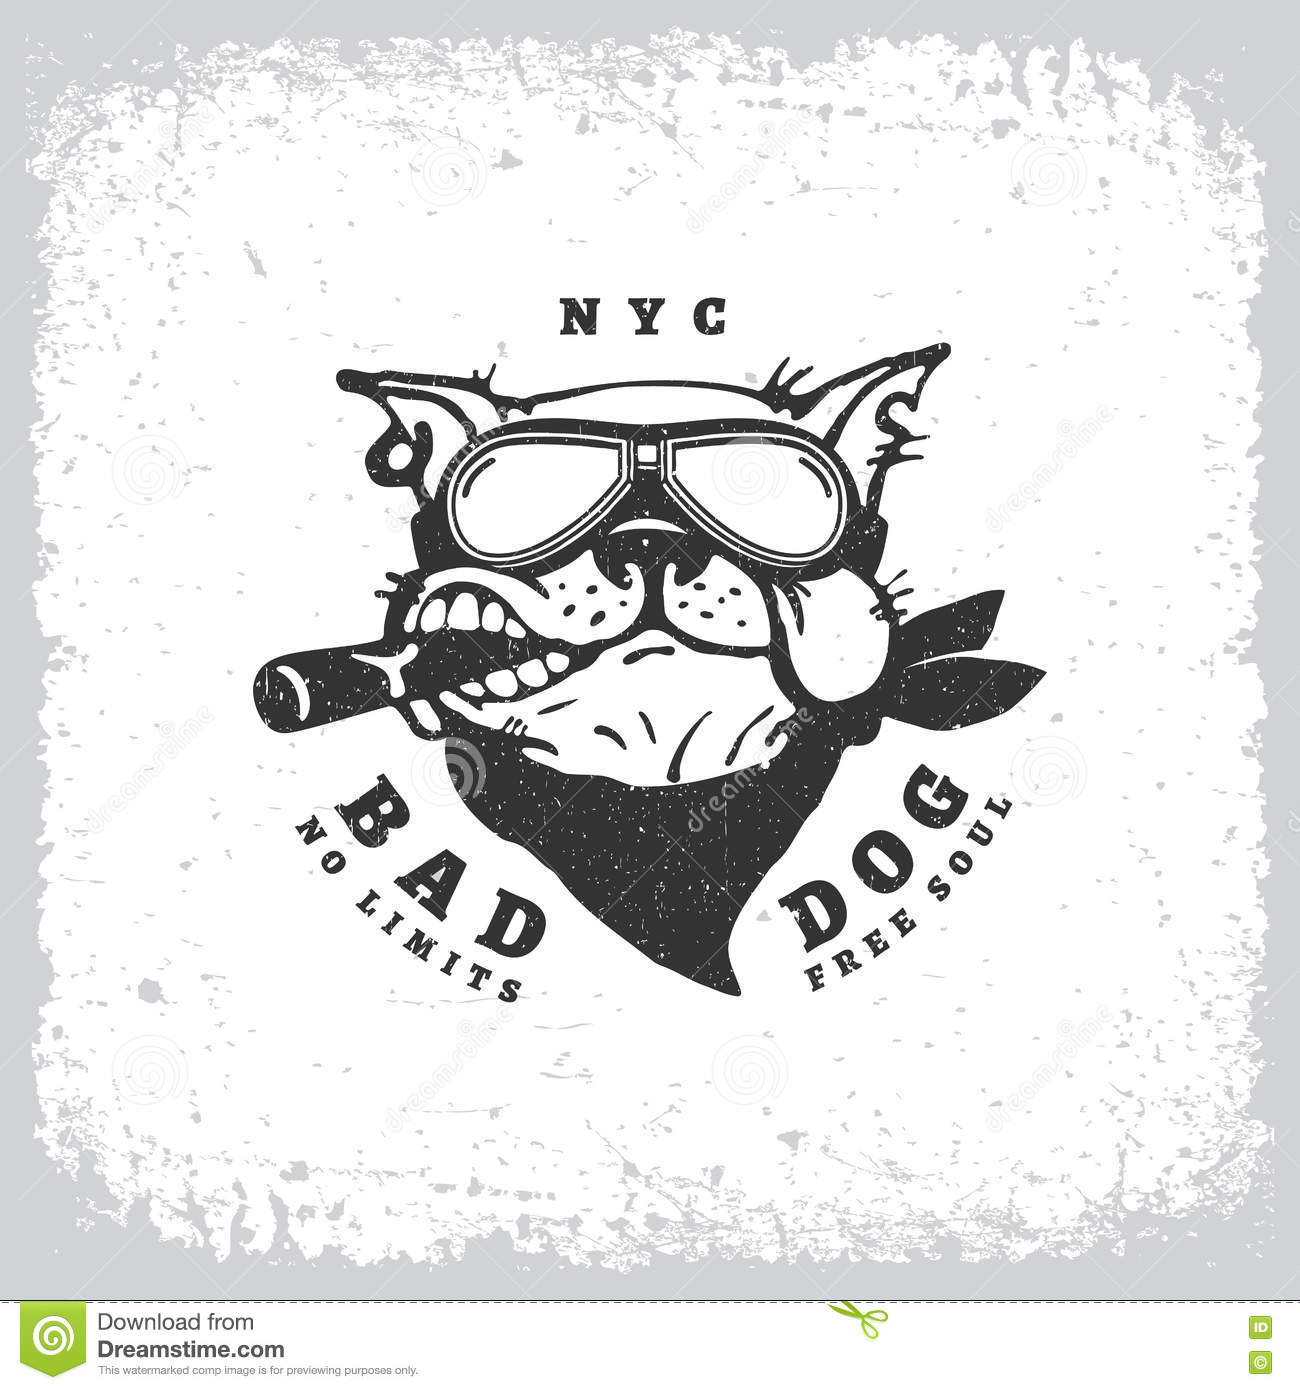 b5e90576 Vintage label with bulldog in goggles on grunge background for t-shirt  print, poster, emblem. Vector illustration.